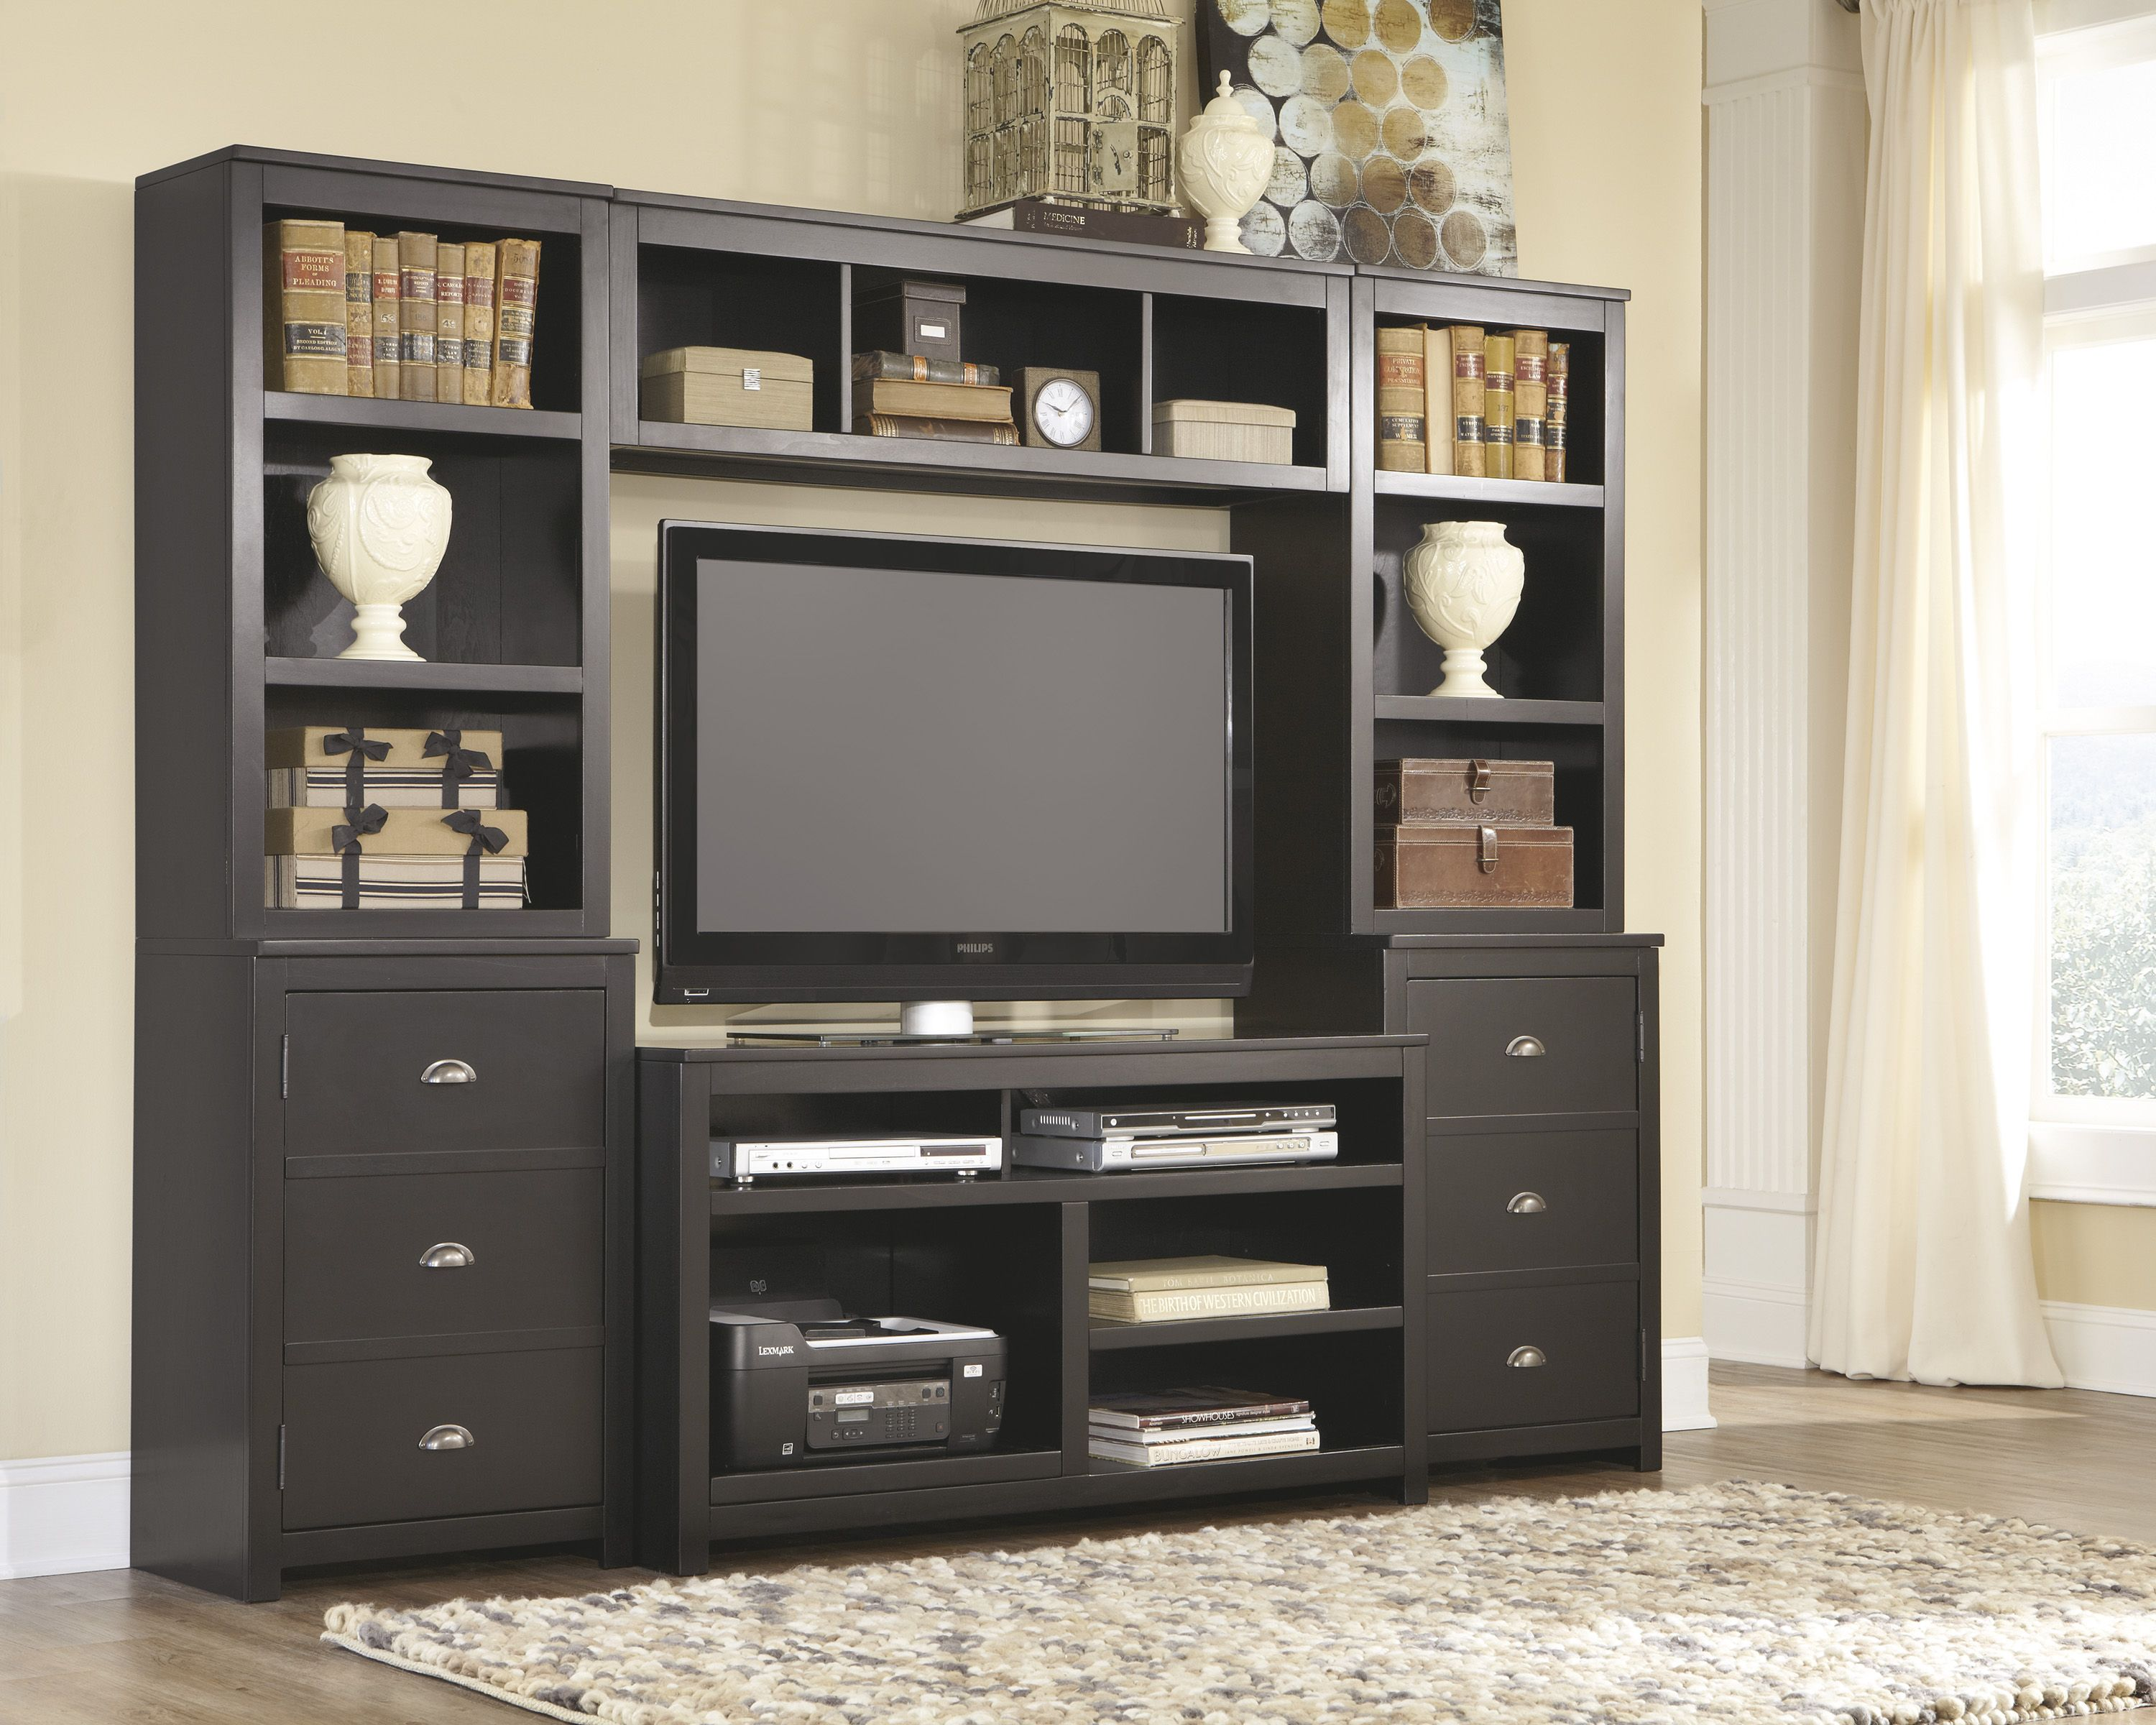 Ashley Furniture W580 Owingsville Black (With images